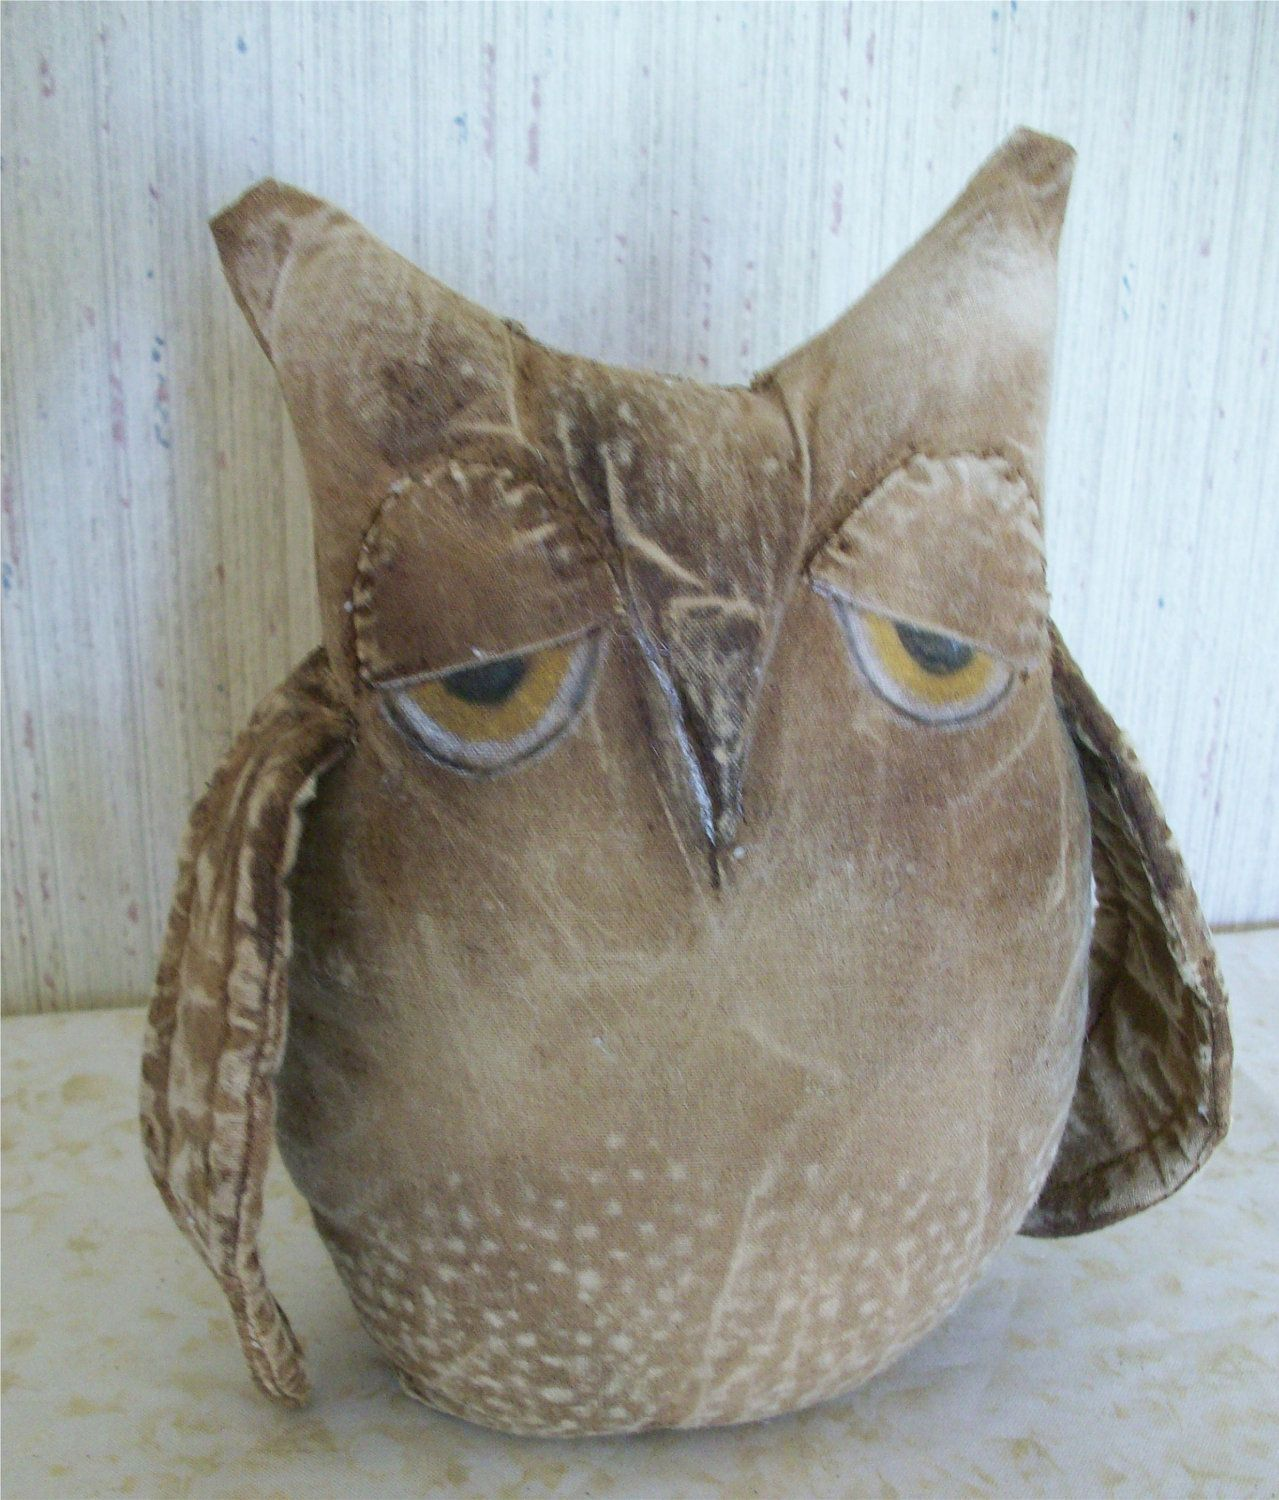 Primitive Grungy Owl Shelf Sitter.